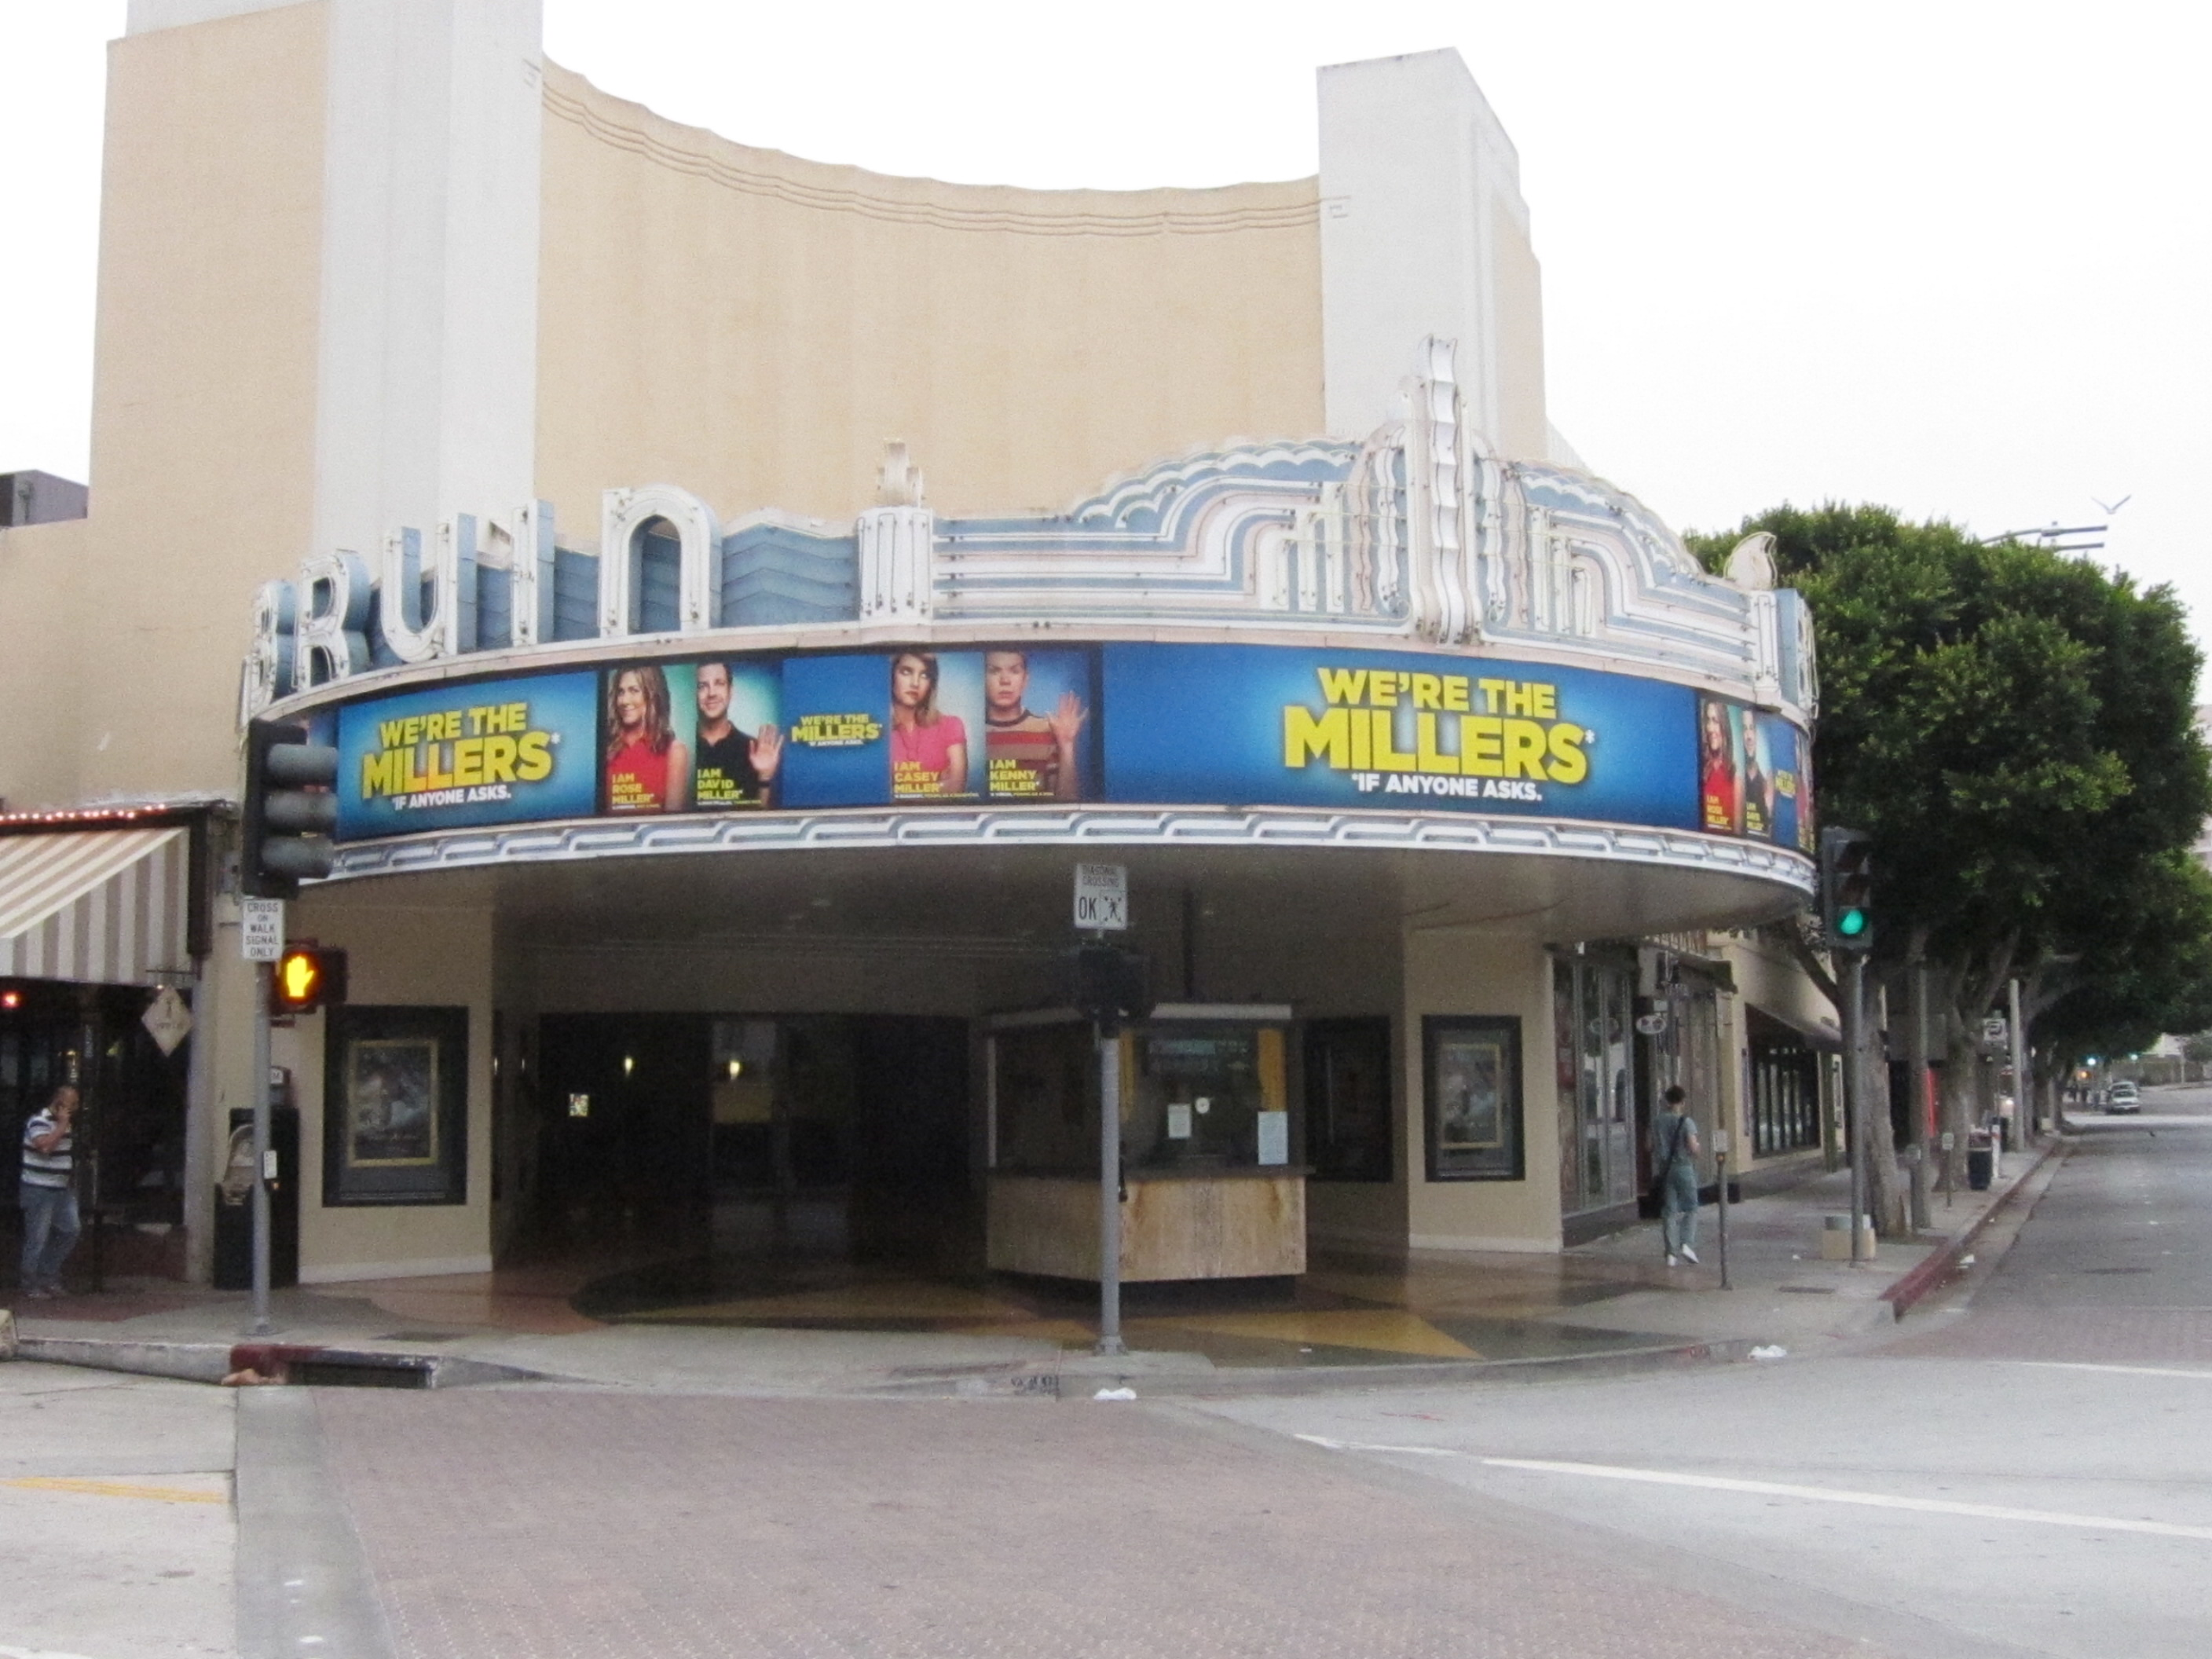 Custom marquee for WE'RE THE MILLERS at the Regency Bruin Theatre in Westwood.